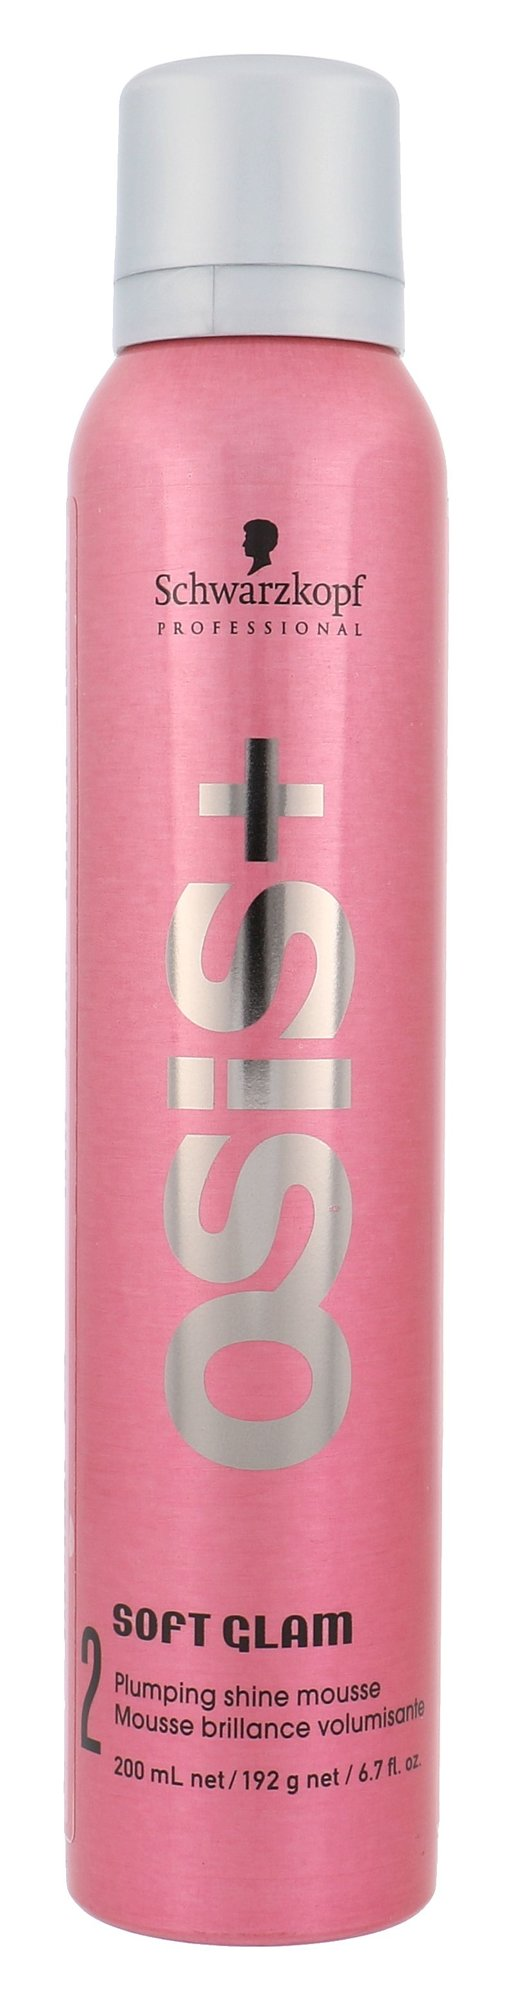 Schwarzkopf Osis+ Soft Glam Plumping Shine Mousse Cosmetic 200ml